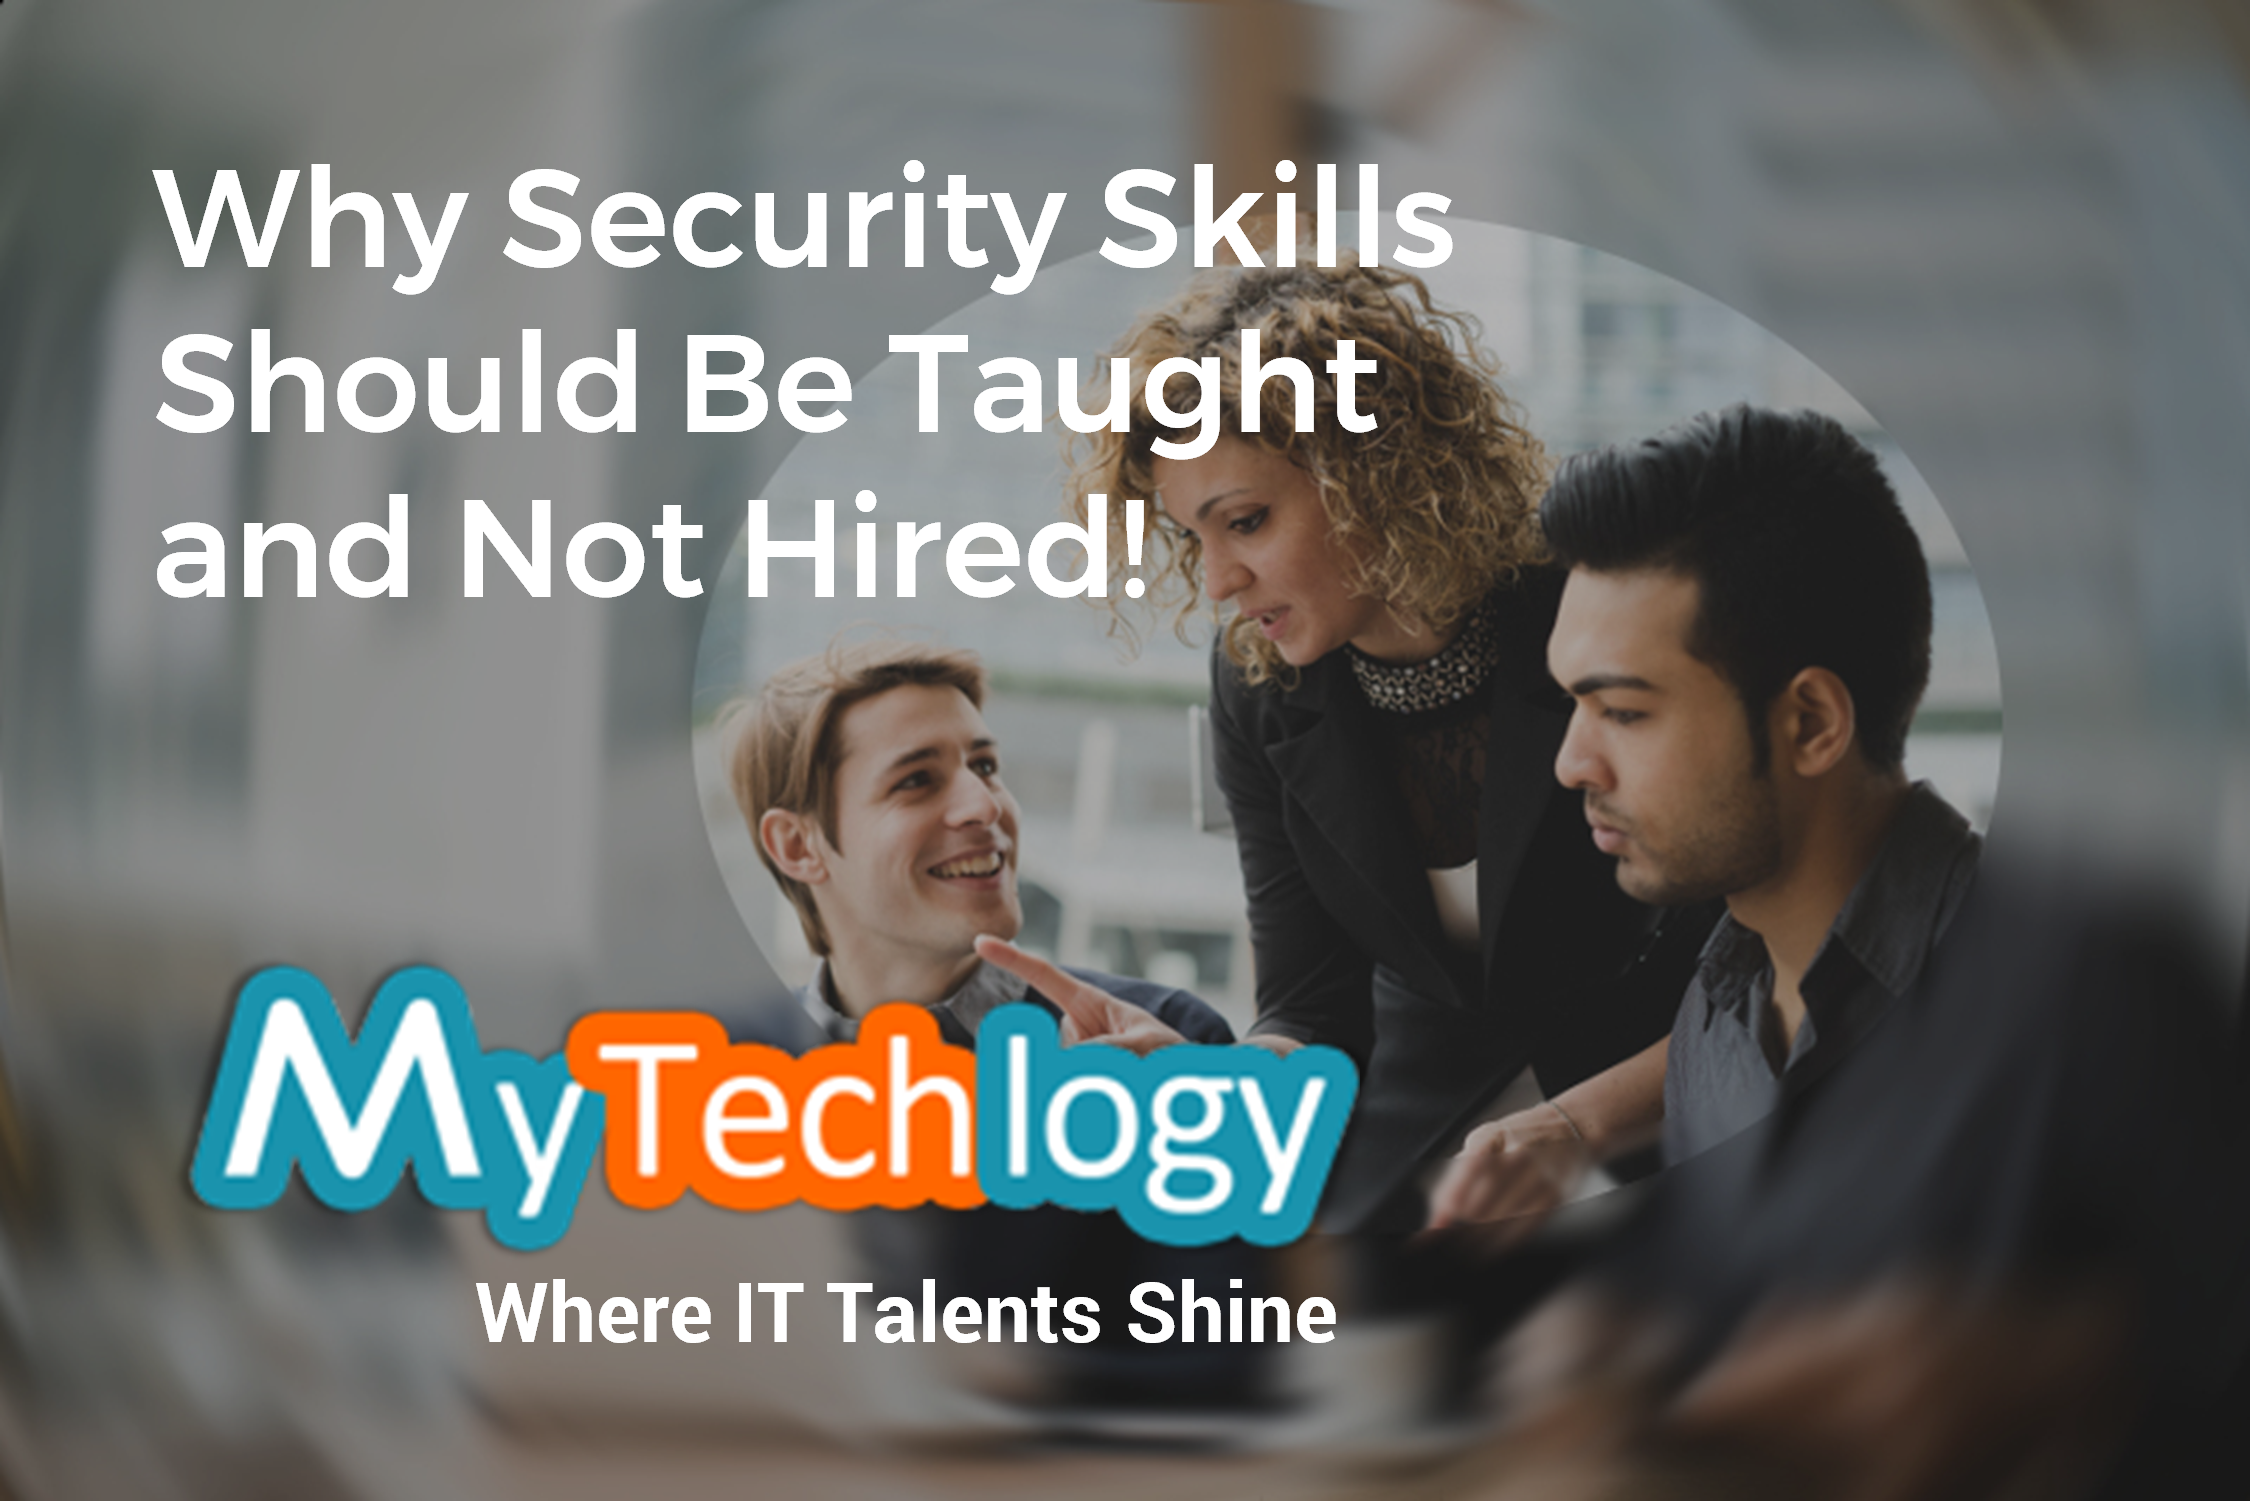 Why Security Skills Should Be Taught, Not Hired - Image 1